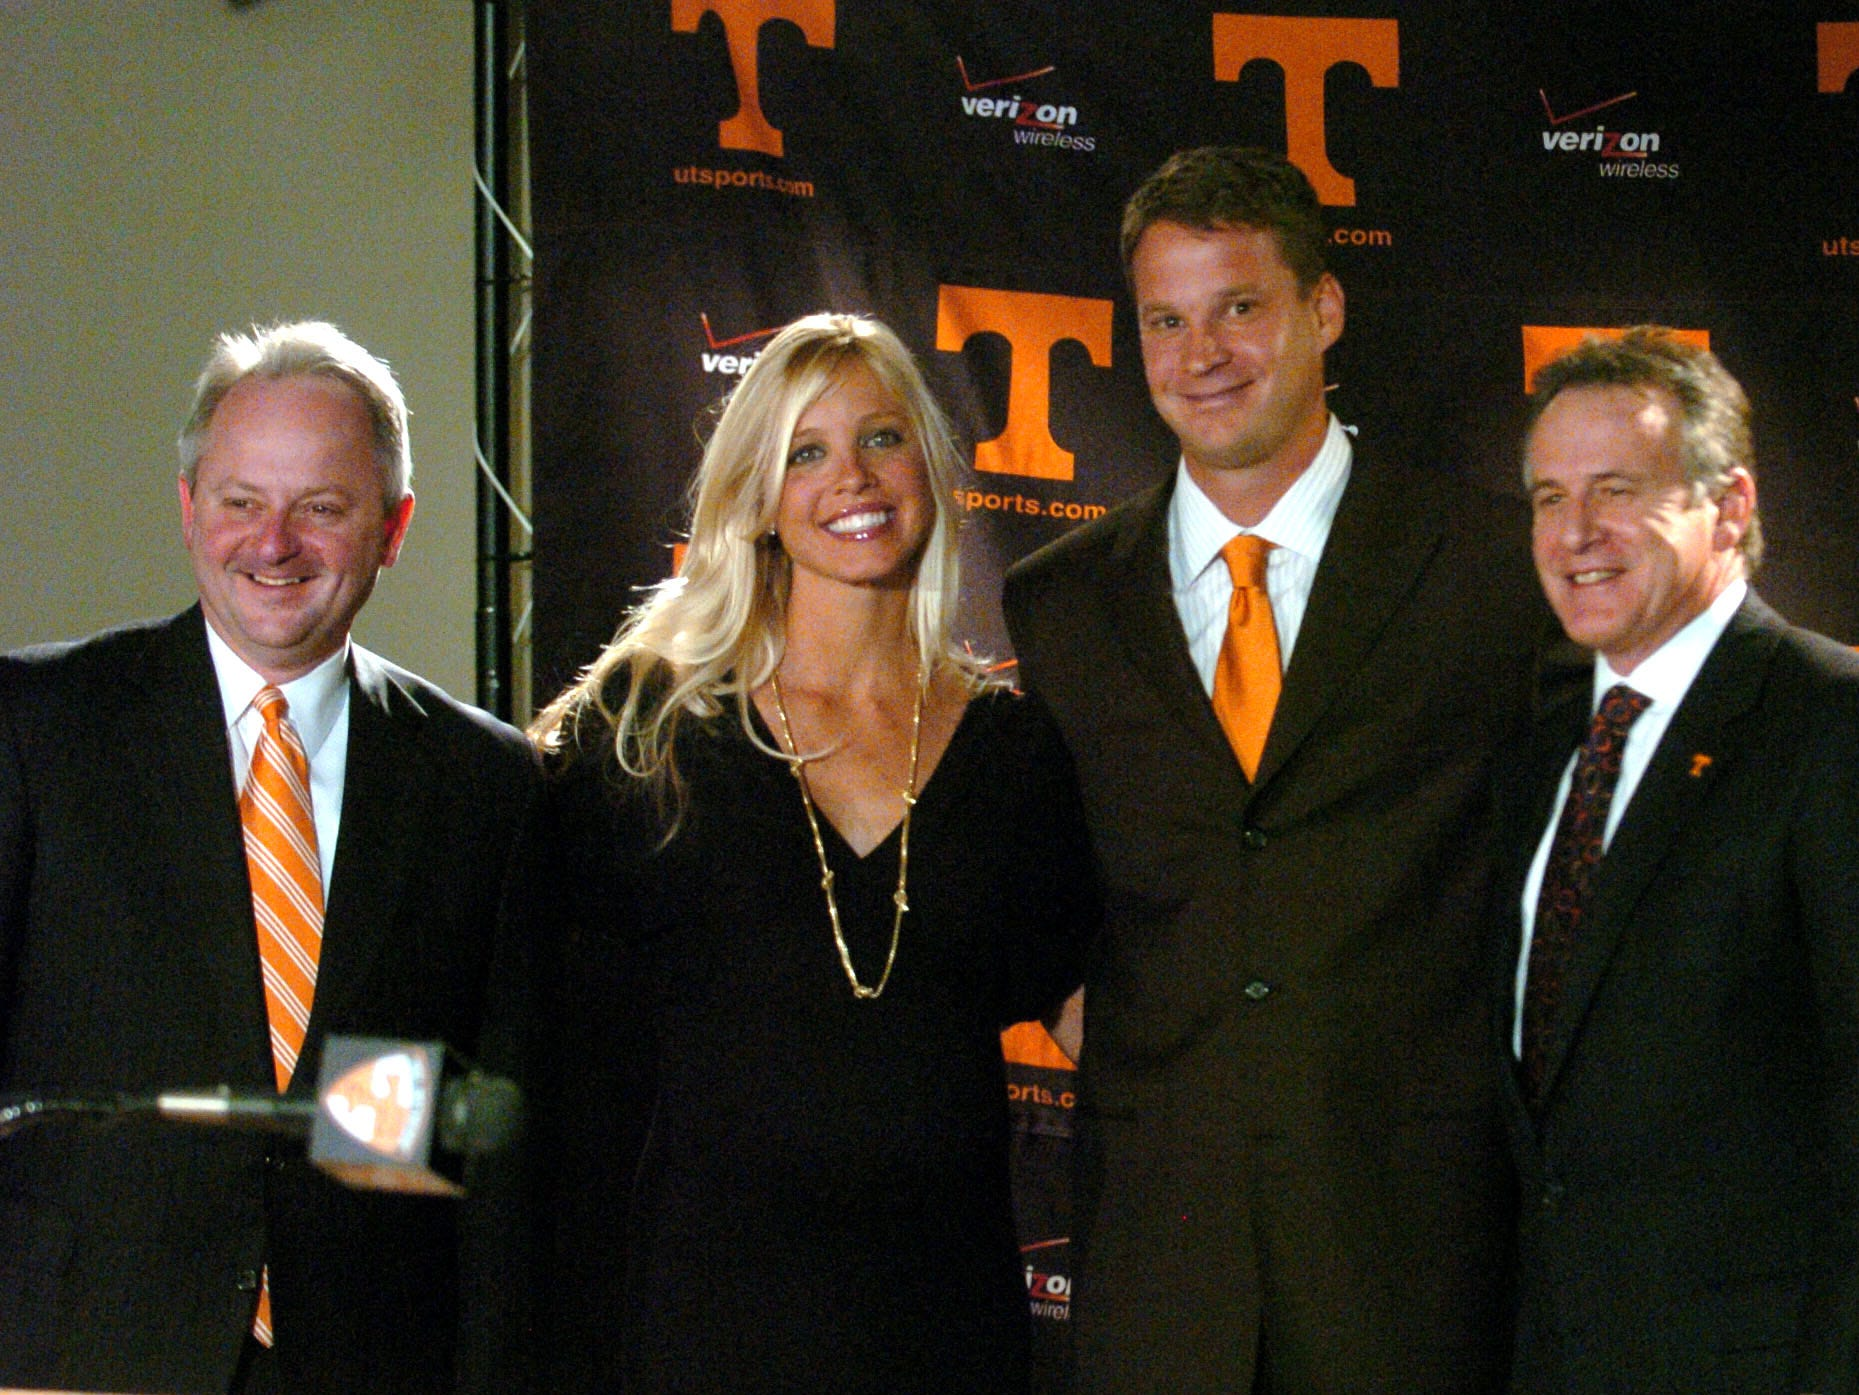 Athletic Director Mike Hamilton, left, new football coach Lane Kiffin with his wife, Layla, and UT President John Petersen pose for photographers after a press conference at Neyland Stadium Dec. 1, 2008. Kiffin stayed only 13 months before resigning to take the head job at Southern California.